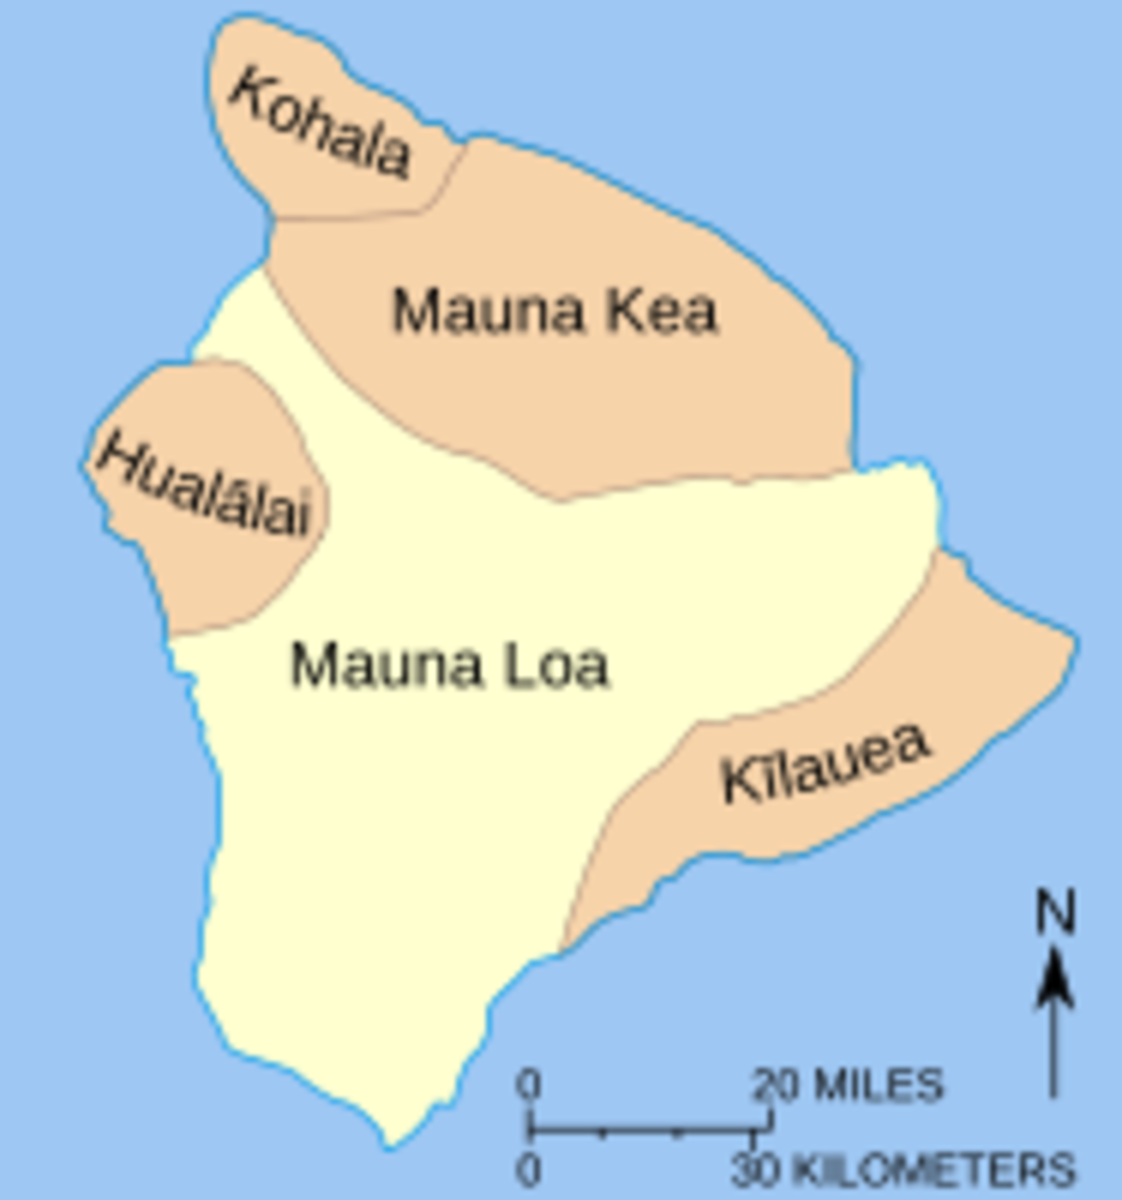 Map of 5 volcanoes comprising Big Island